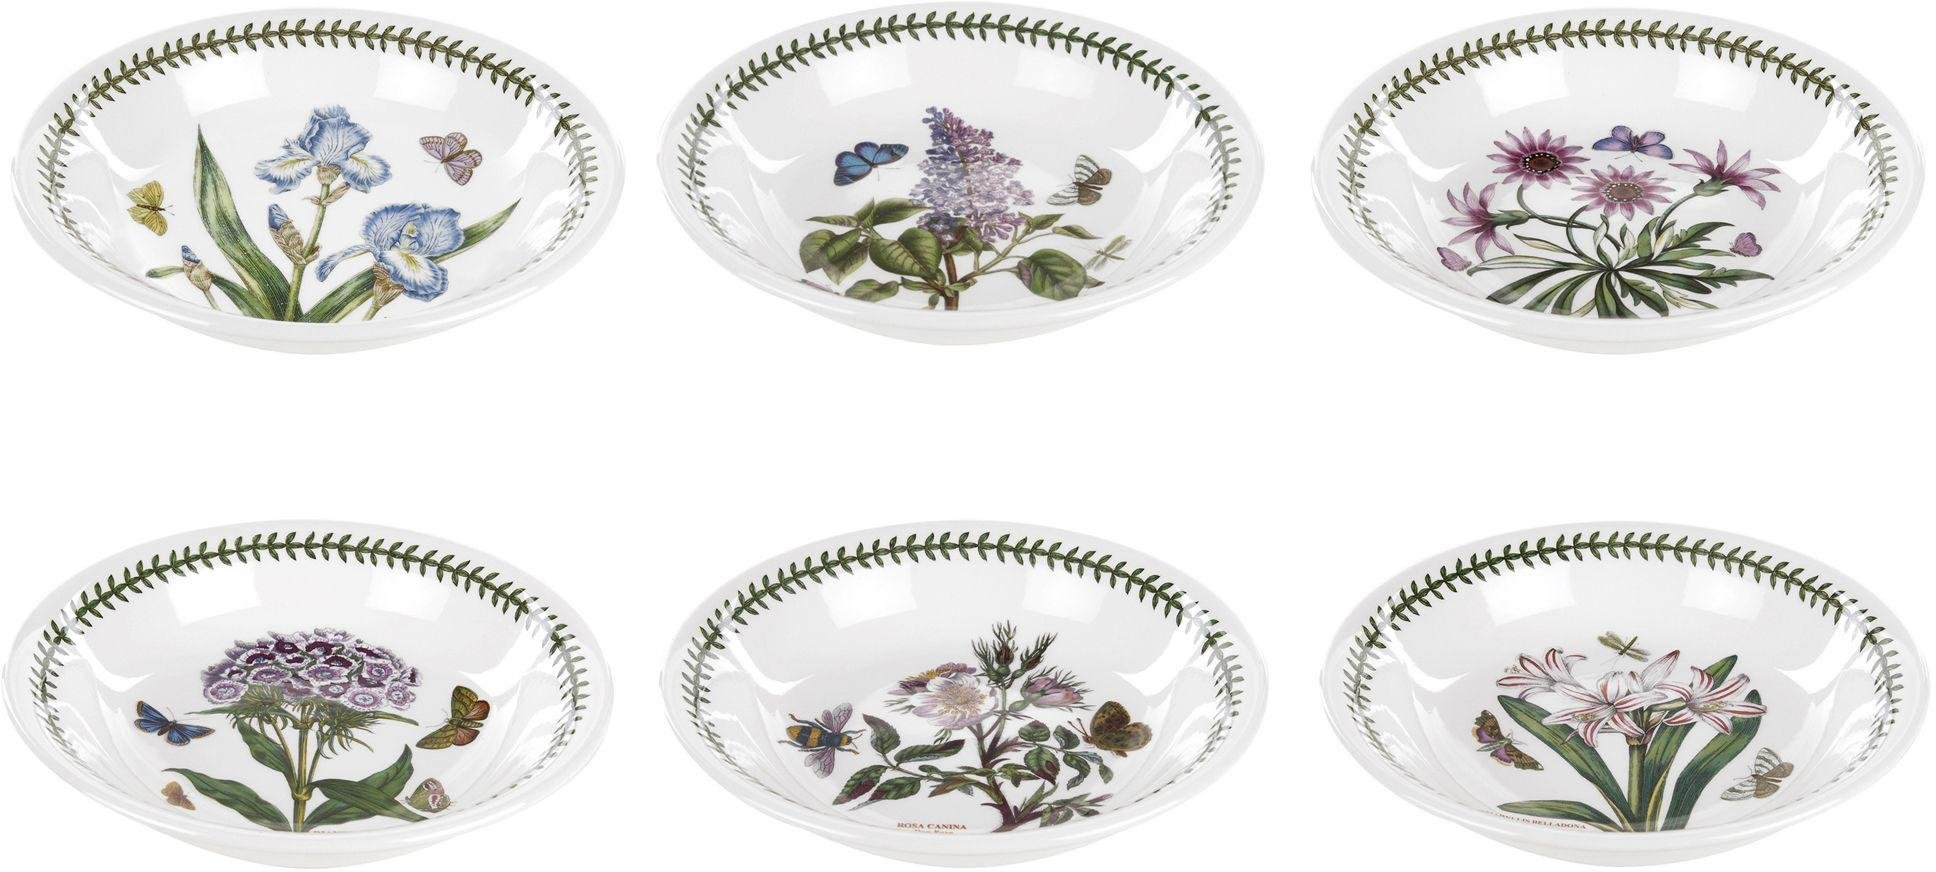 Portmeirion - Botanic Garden Set of 6 Pasta Bowls